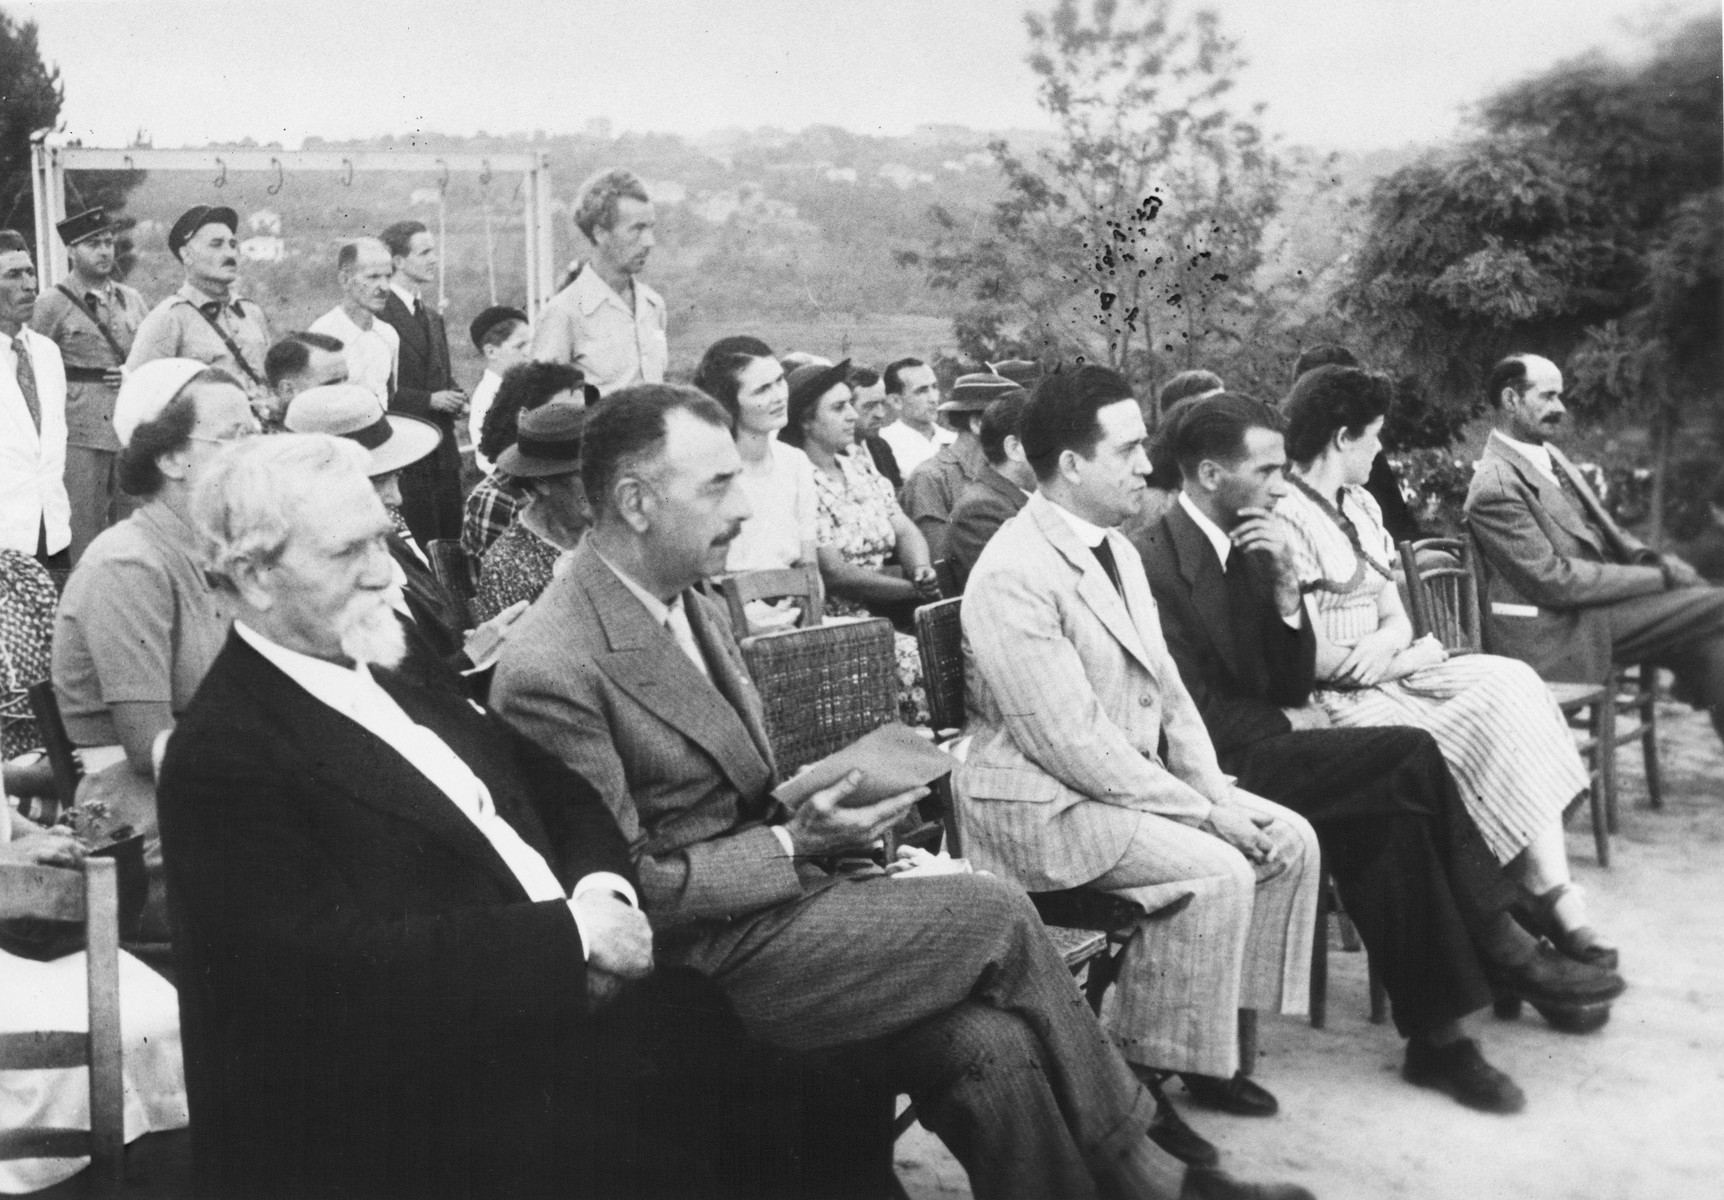 Inauguration of the MACE children's home in Vence.  Those pictureed include Joseph Fisera (standing center), Pierre Toureille, and Dr. Du Bina.